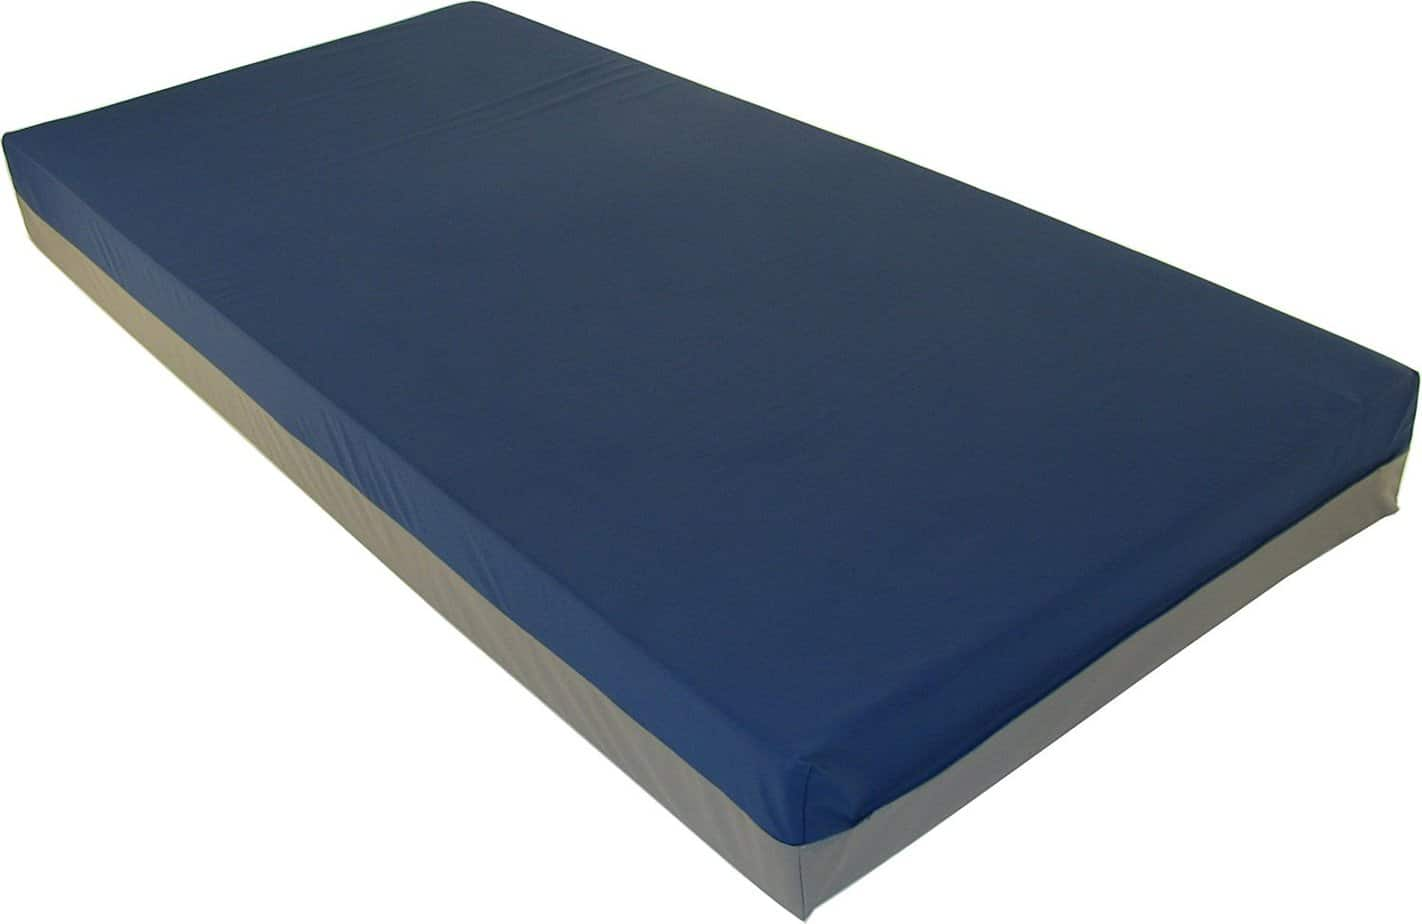 picture of the Assure II General Patient and ICU mattress